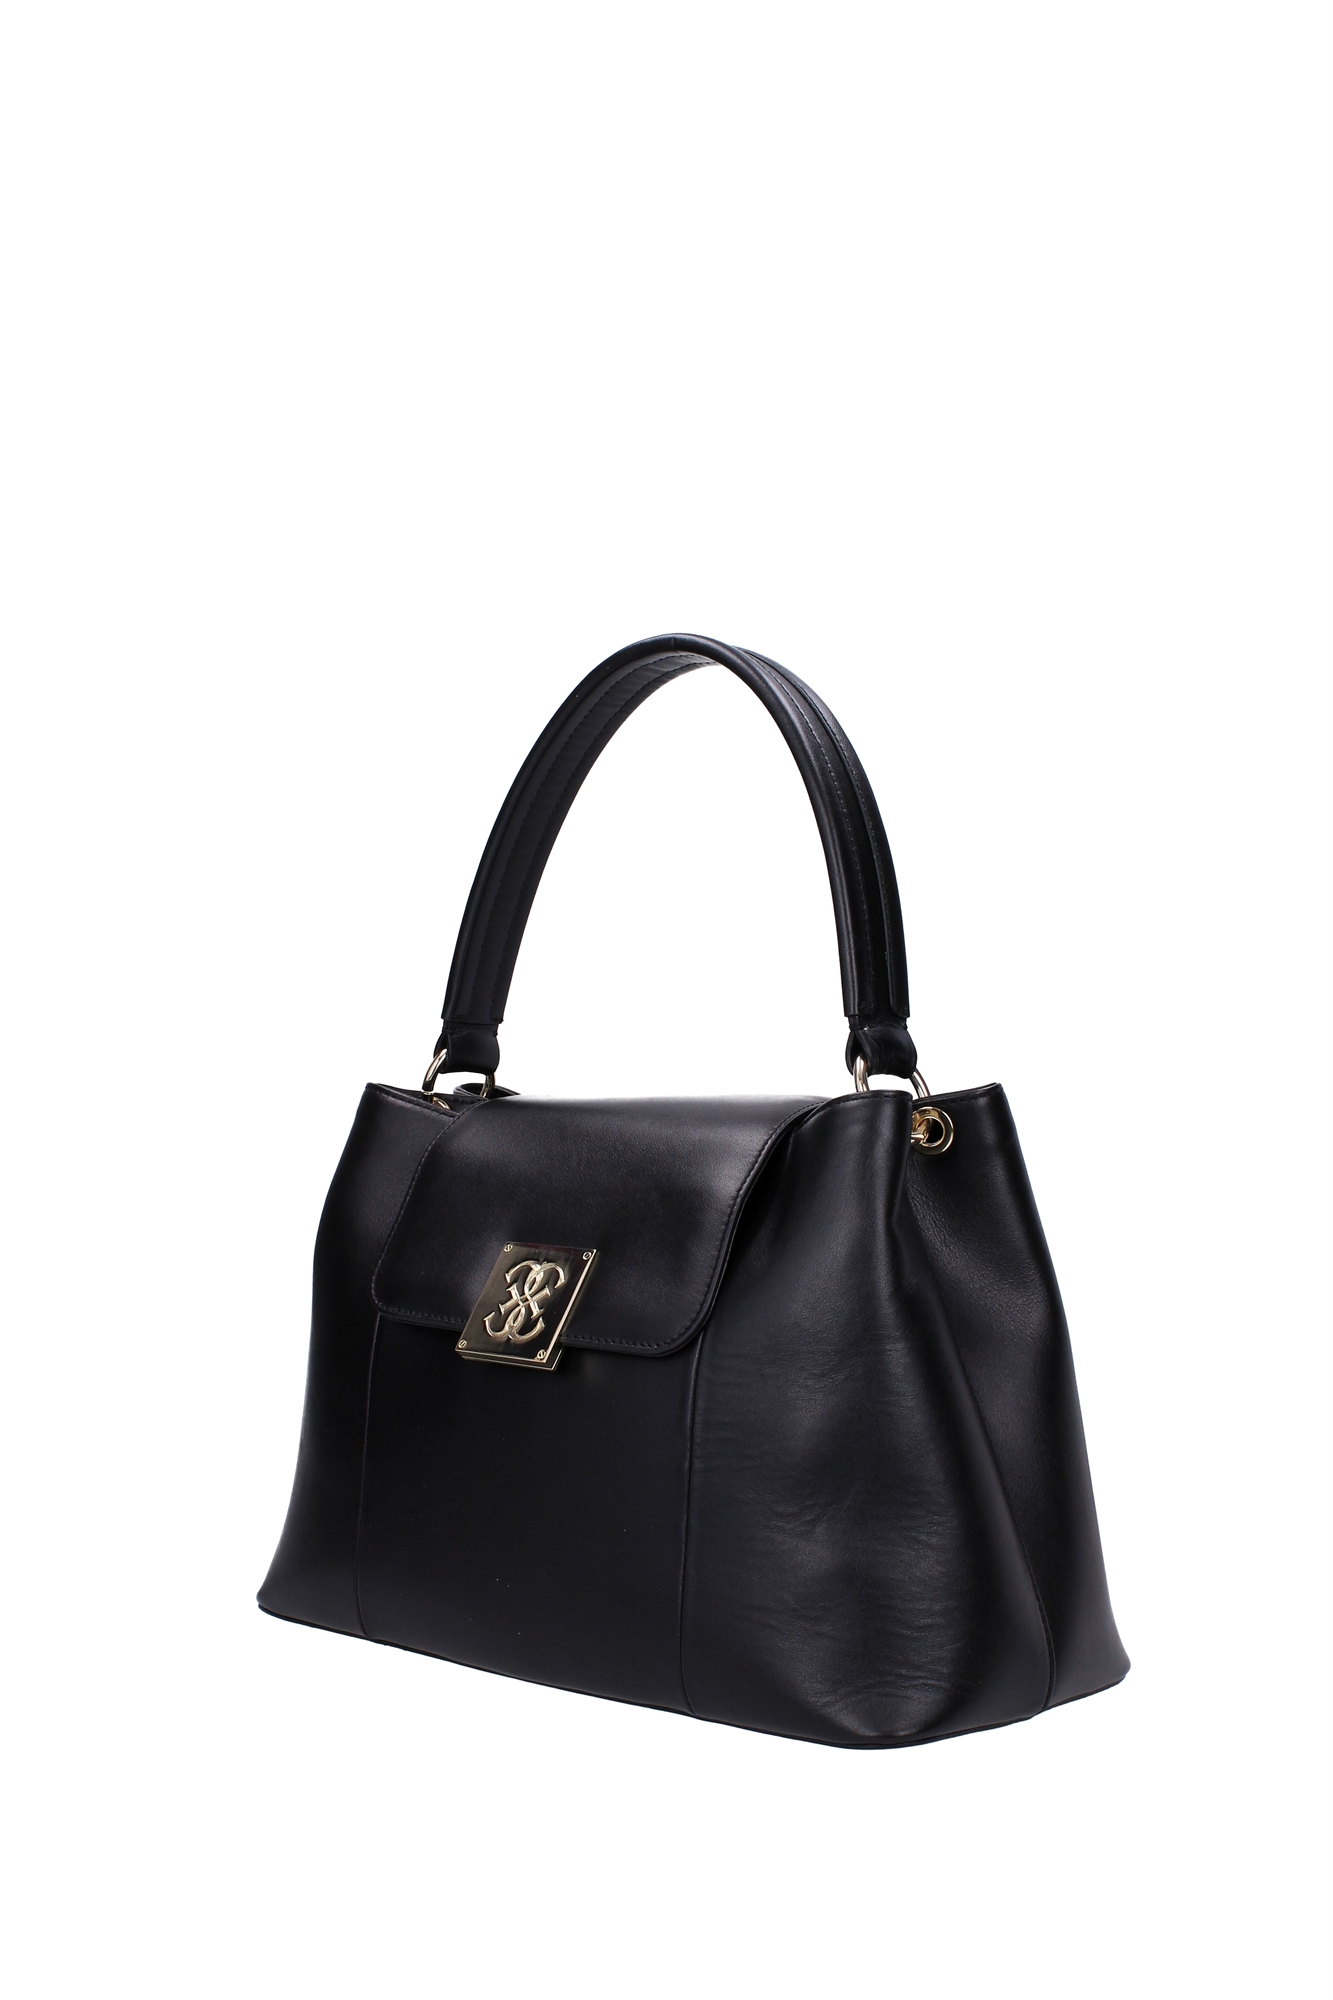 Model Shopguessnetau Guess, The American Apparel And Accessories Brand Has Been Popular For A Long Time And Is One Of The Most Preferred Brands In The Market When It Comes To Bags For The Women Who Love